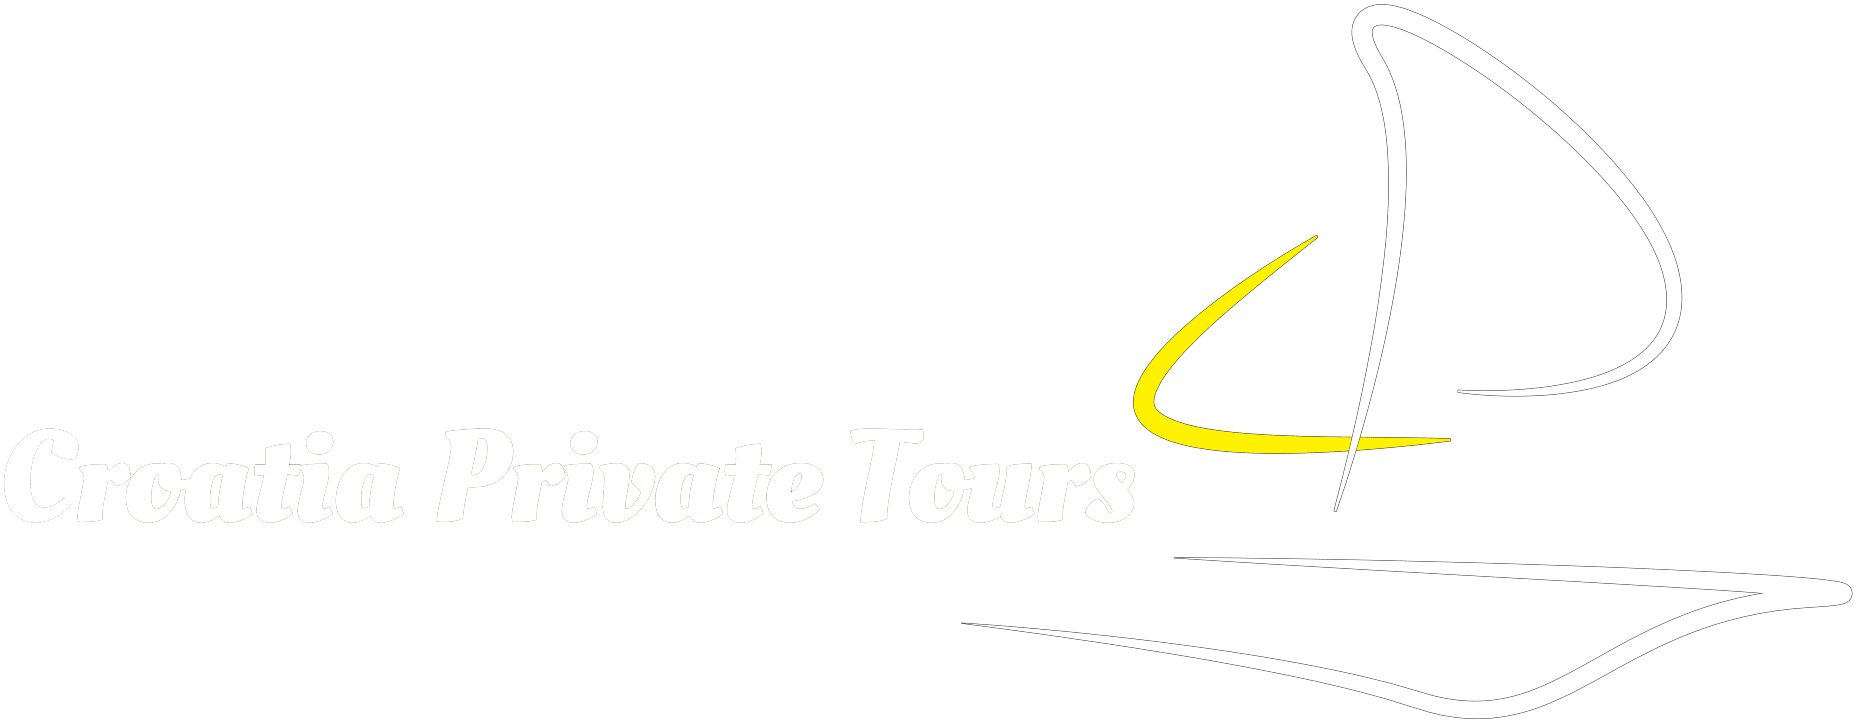 Croatia Private tours tailor made transfer in Croatia logo